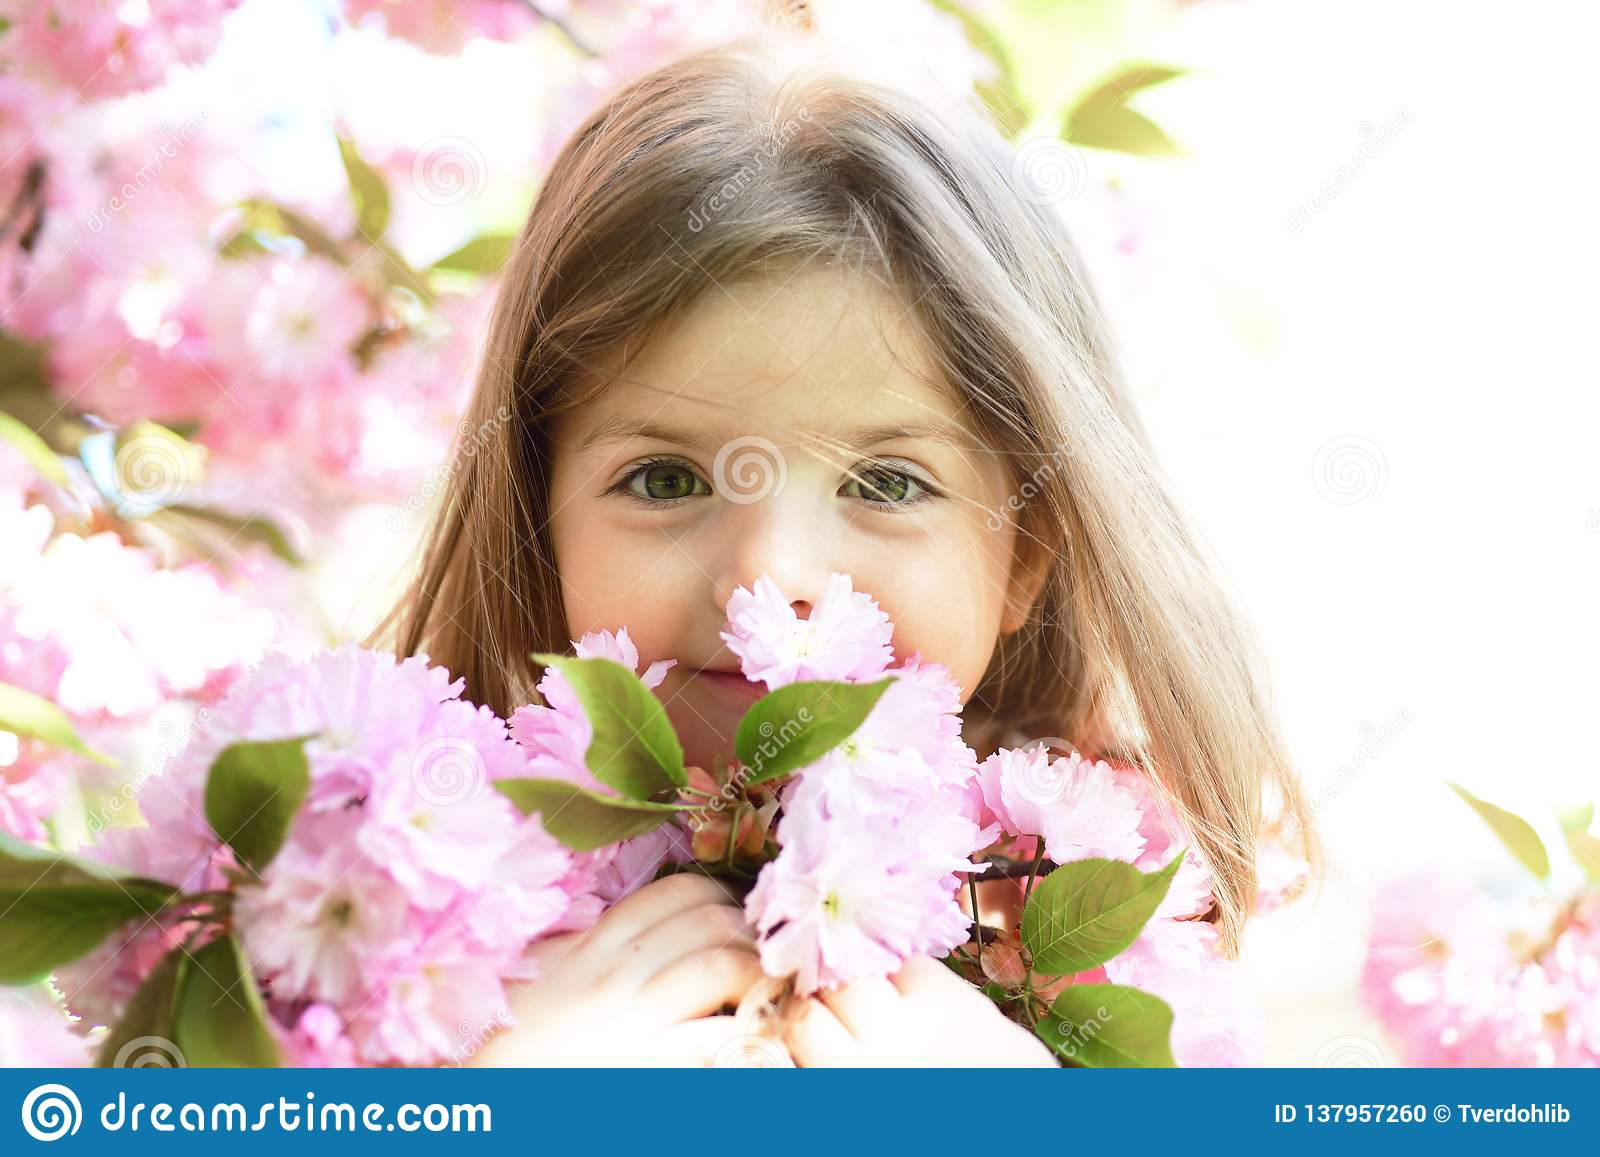 Springtime. weather forecast. Little girl in sunny spring. face and skincare. allergy to flowers. Summer girl fashion